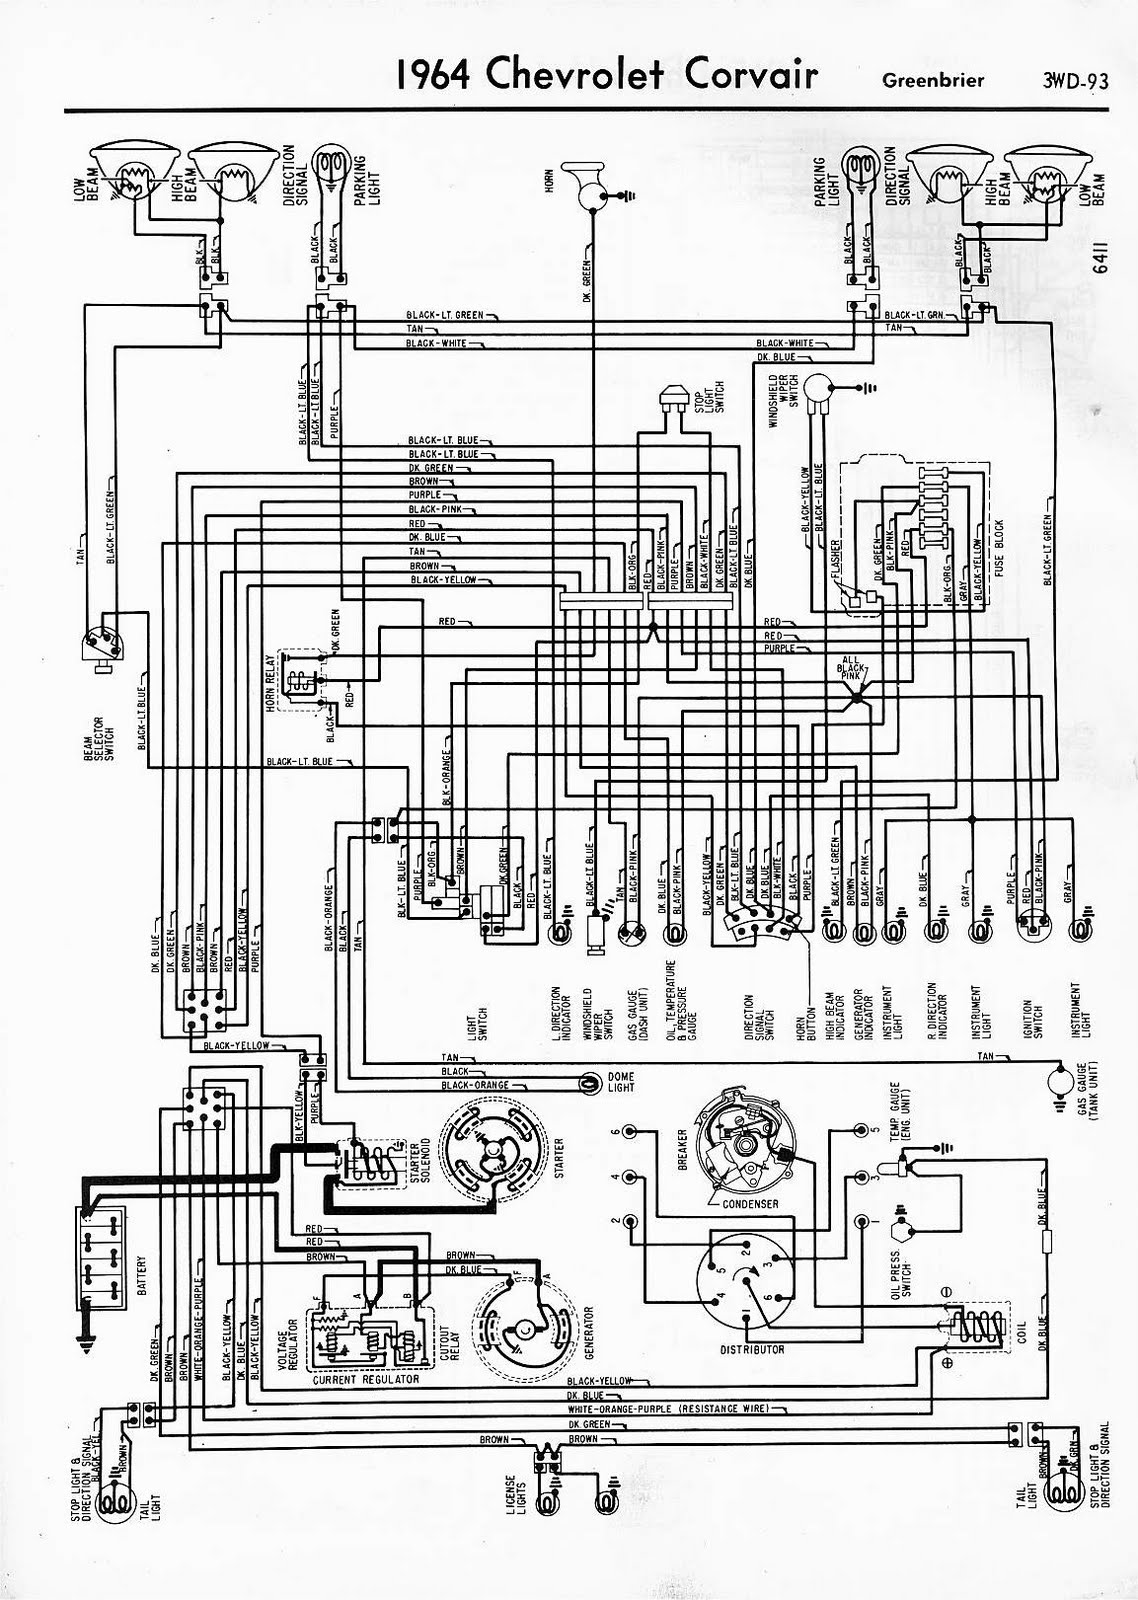 small resolution of 63 corvair wiring diagram wiring diagram for you 1965 corvair wiring diagram corvair fuse box wiring